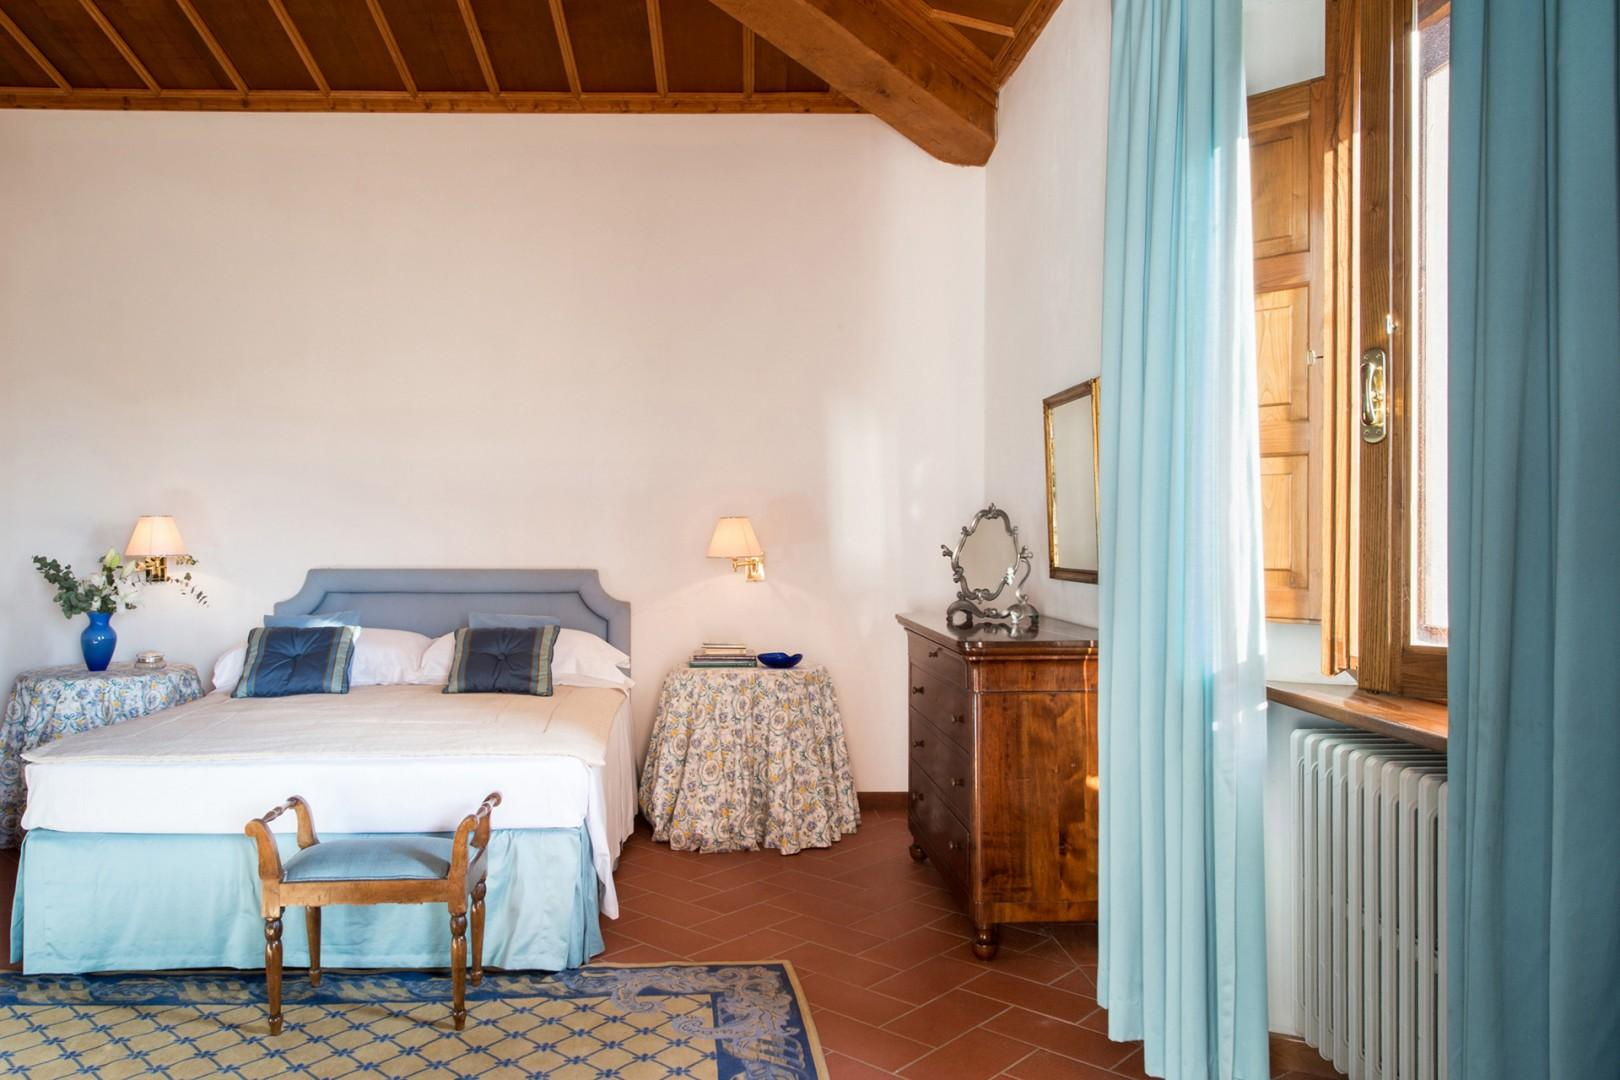 Bedroom 3 with en suite bathroom equipped with air conditioning and a stunning view.